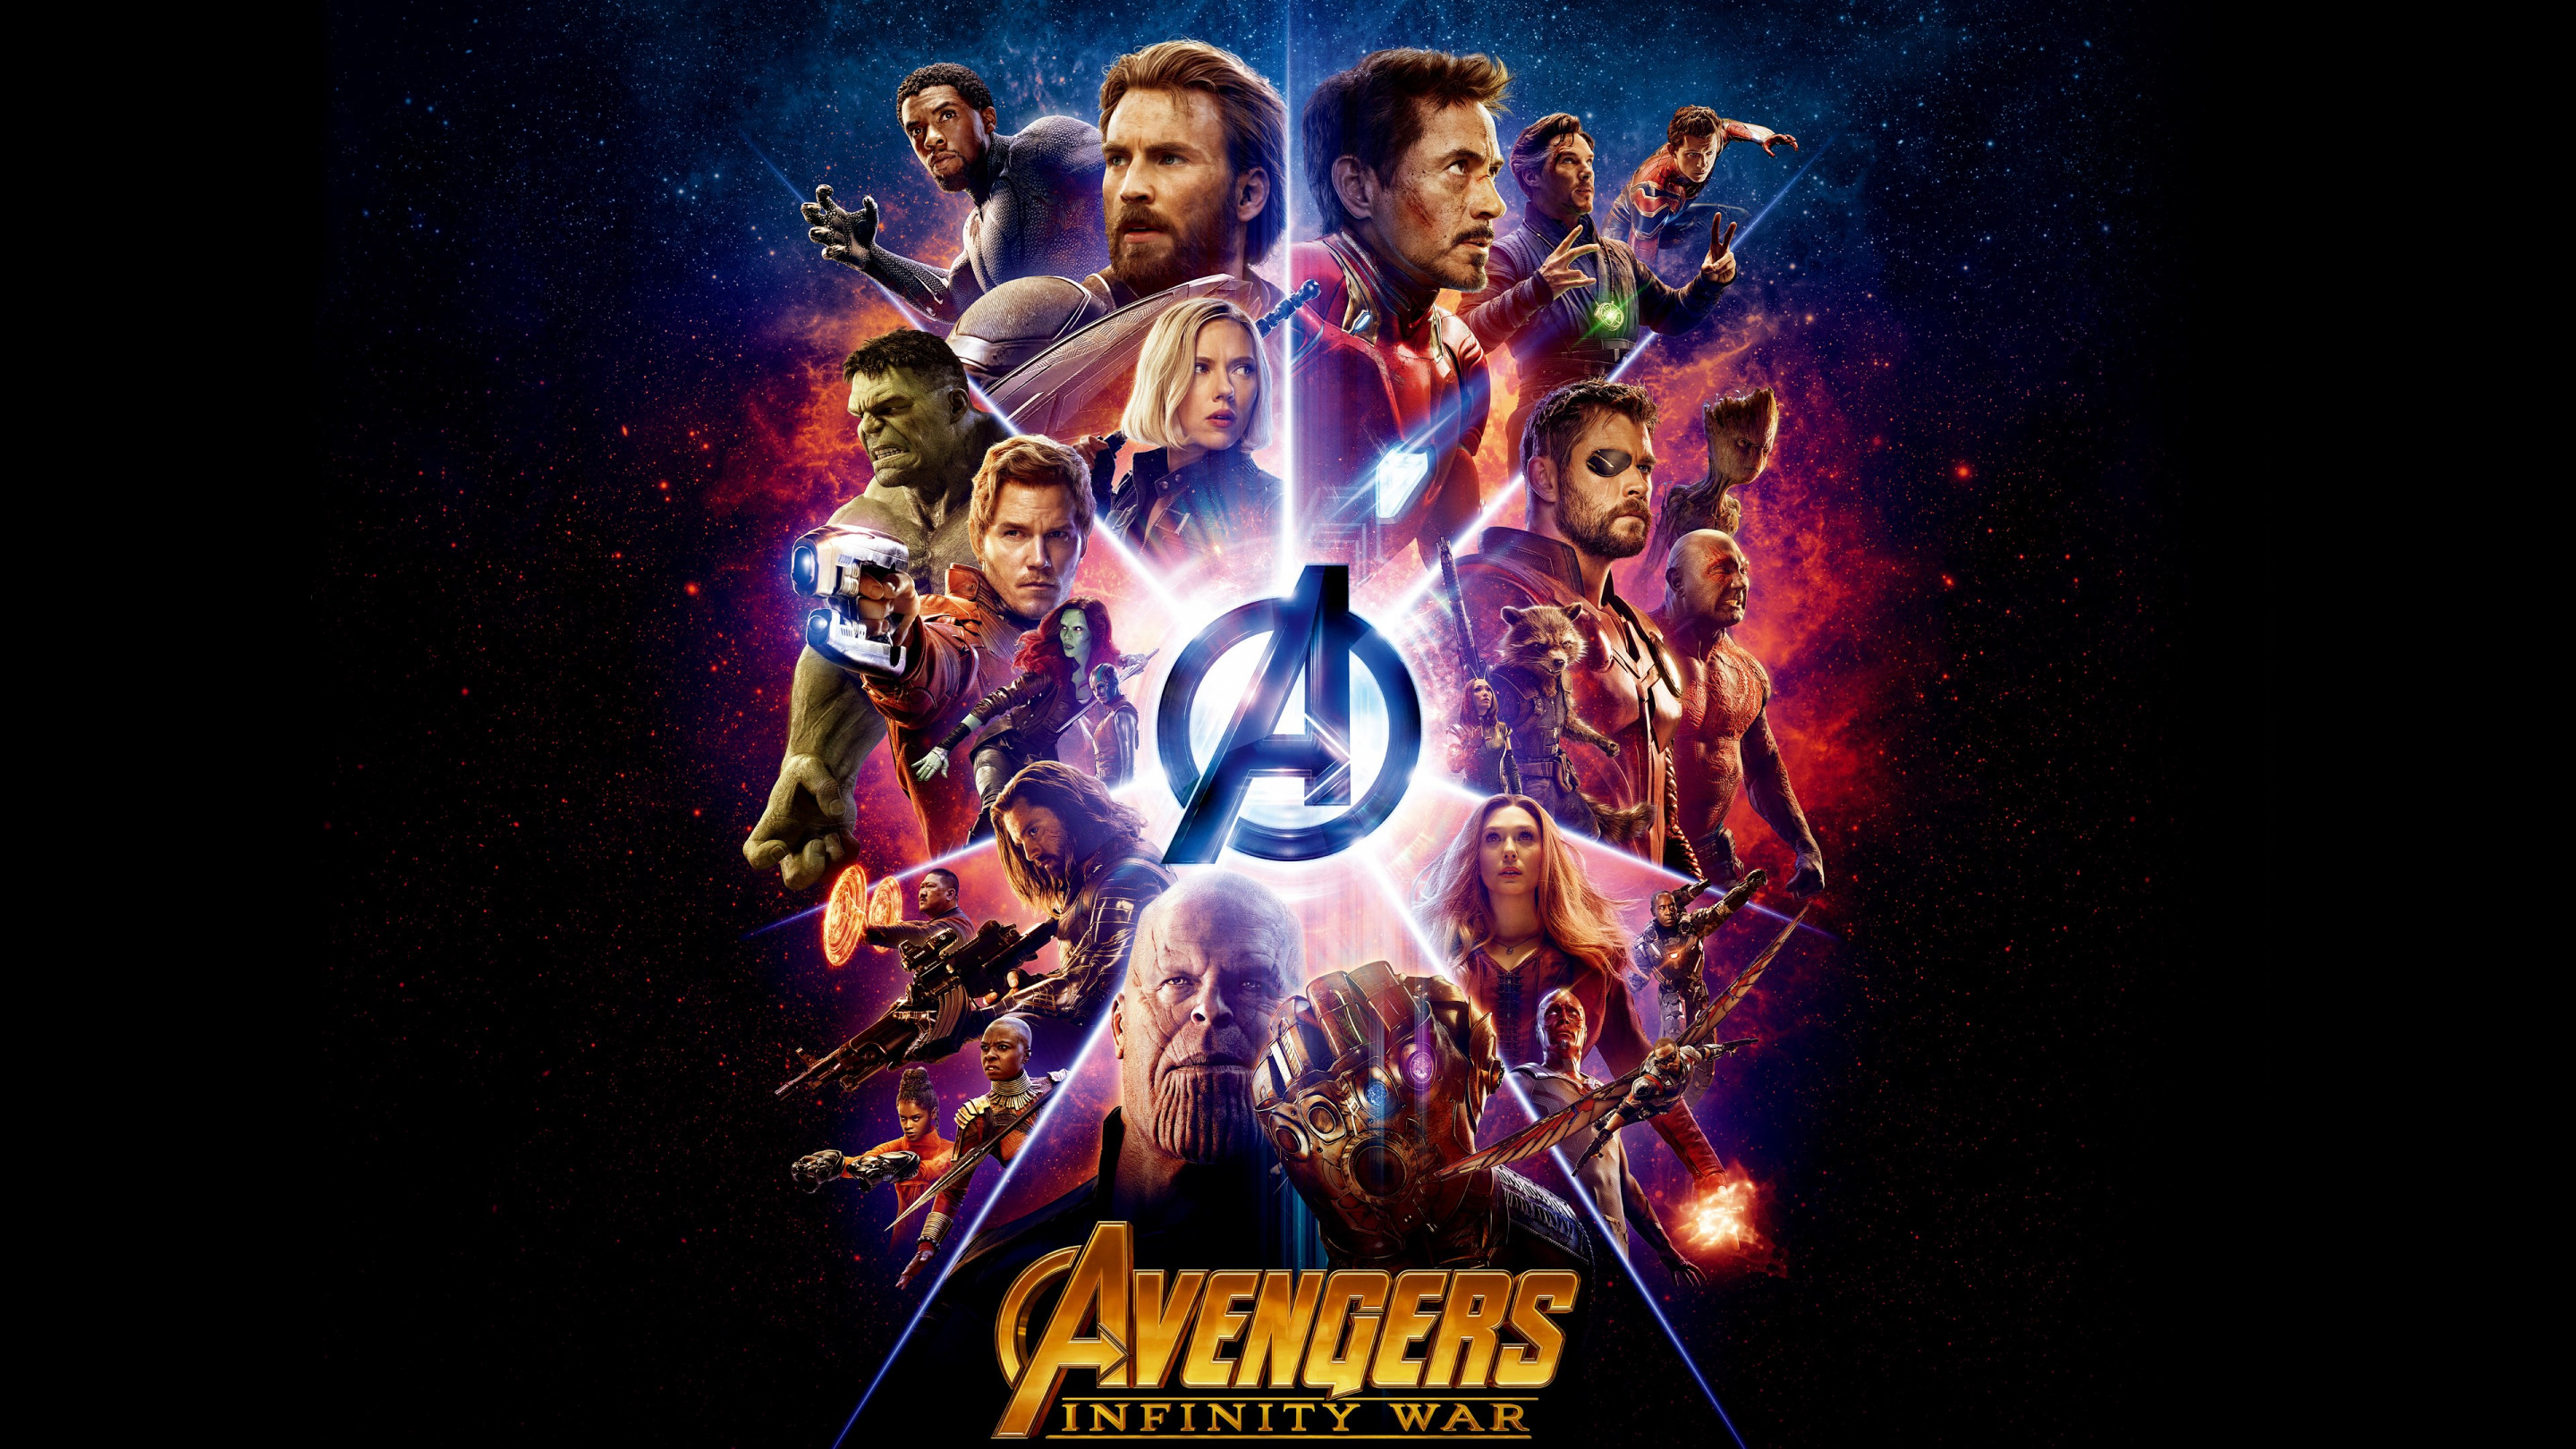 All the heroes from Avengers: Infinity War wallpaper 2880x1620